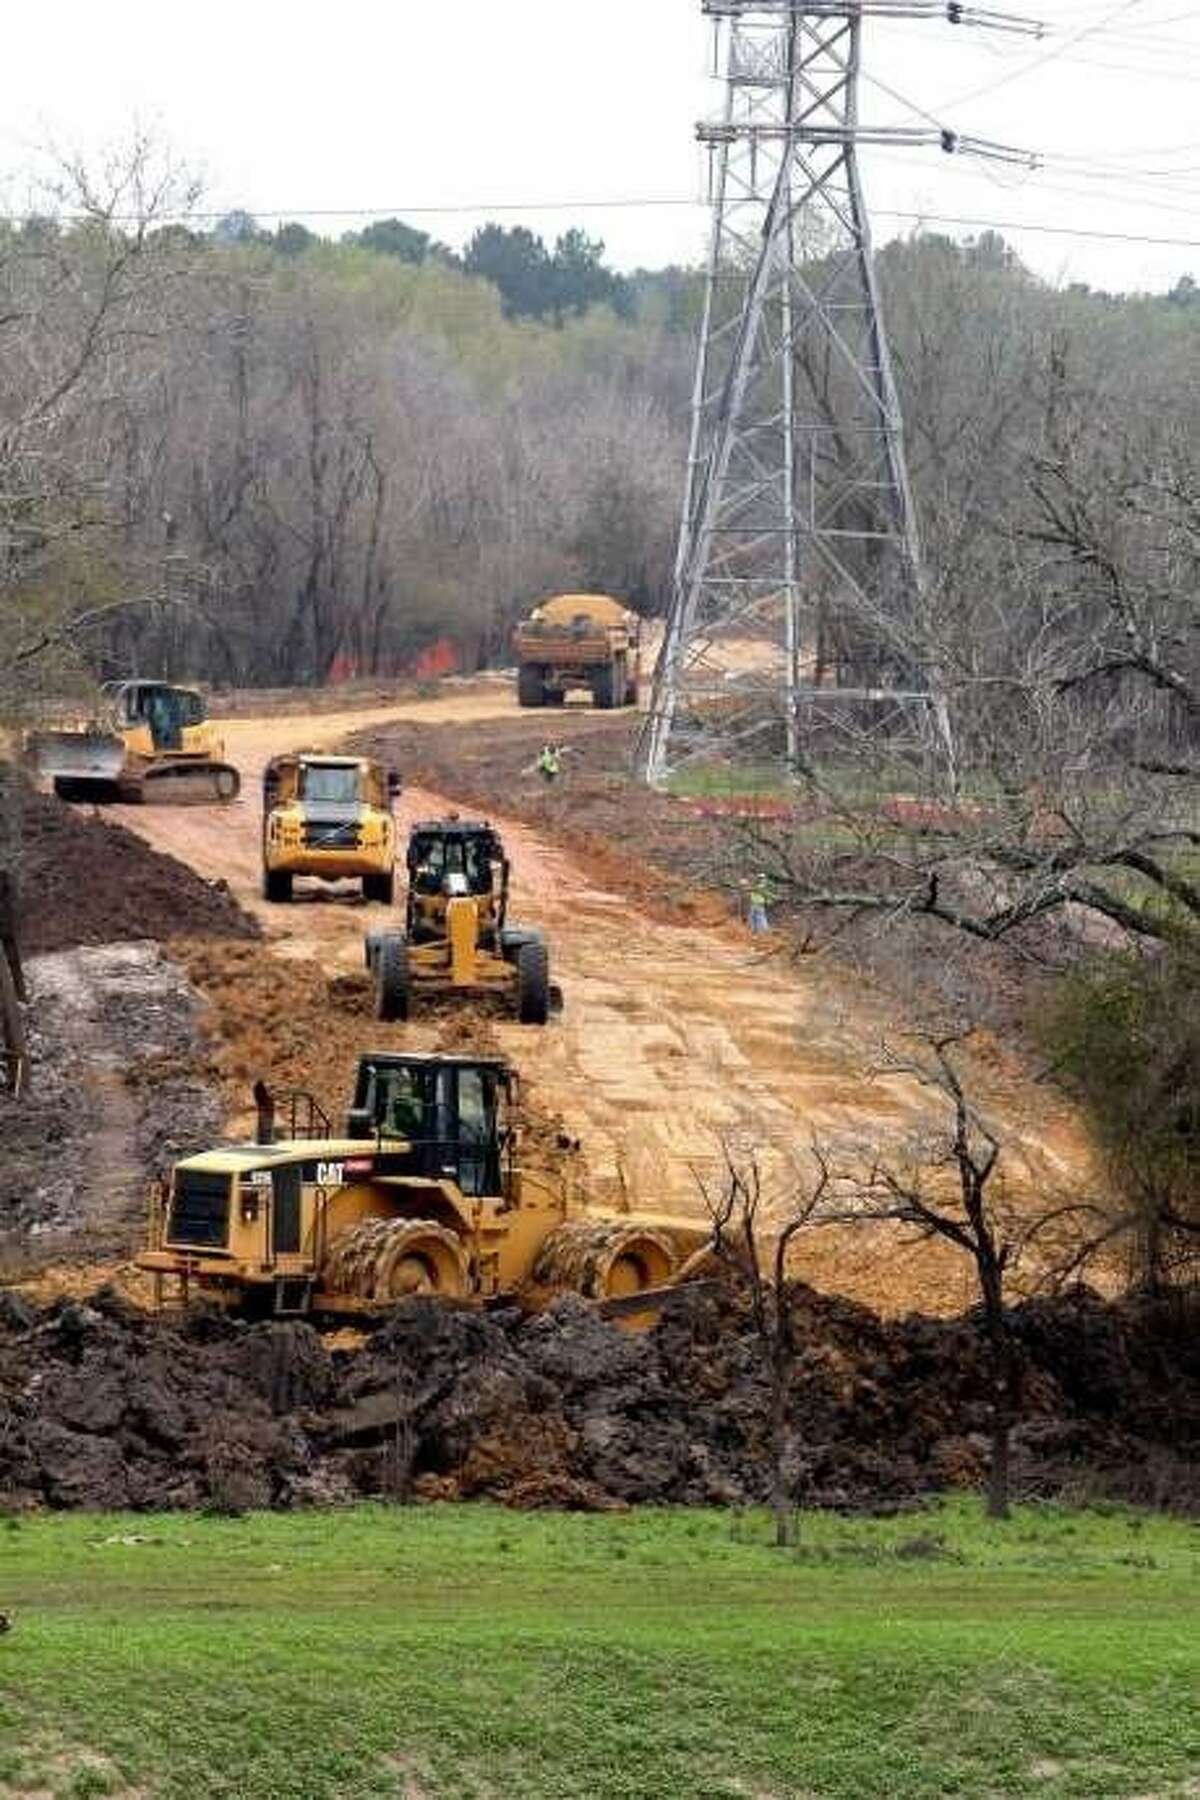 Contractors for Granite Construction Co. prepare construction haul roads in May for the renovations to the Addicks and Barker dams.